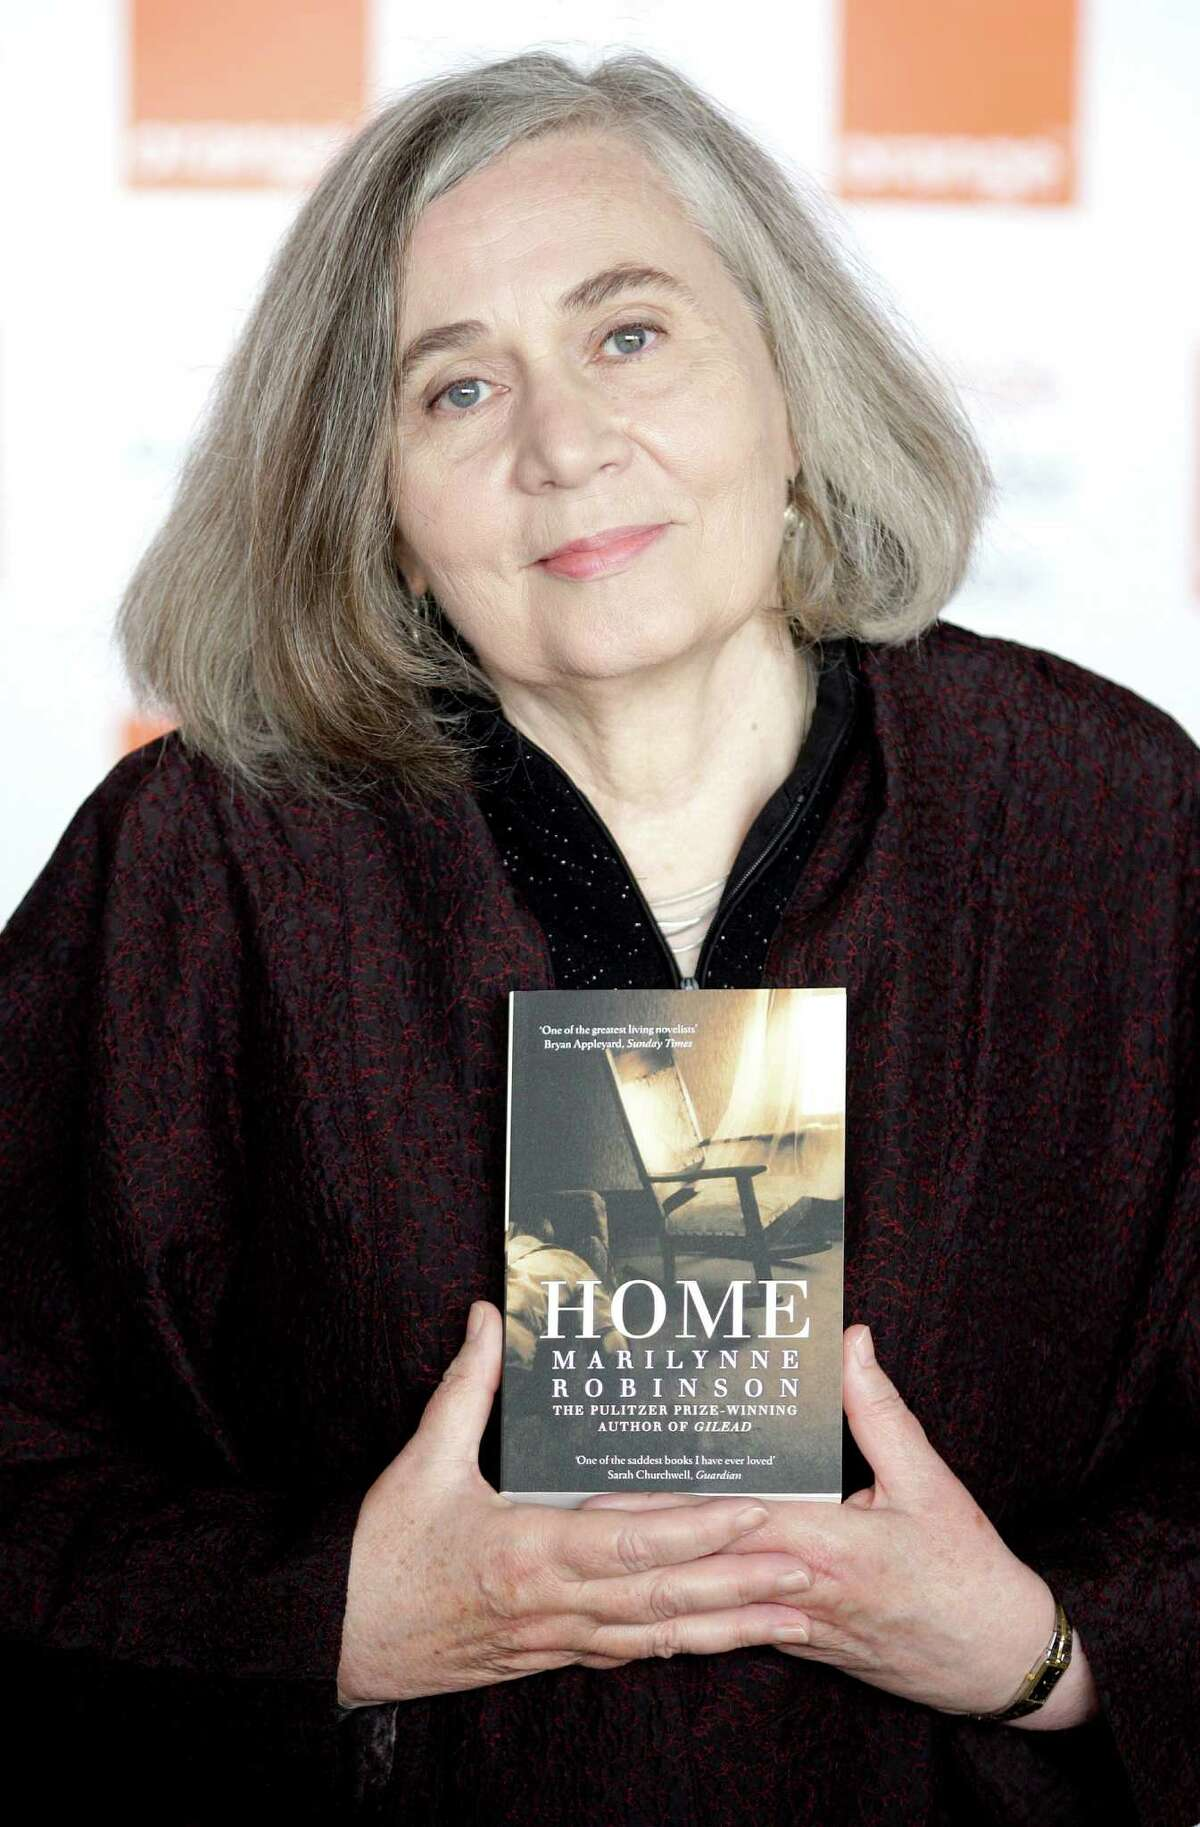 US author Marilynne Robinson poses for photographs with her book 'Home' at the Royal Festival Hall in central London on June 3, 2009, ahead of the Orange Prize for Fiction 2009 Award Ceremony. AFP PHOTO/Shaun Curry (Photo credit should read SHAUN CURRY/AFP/Getty Images)